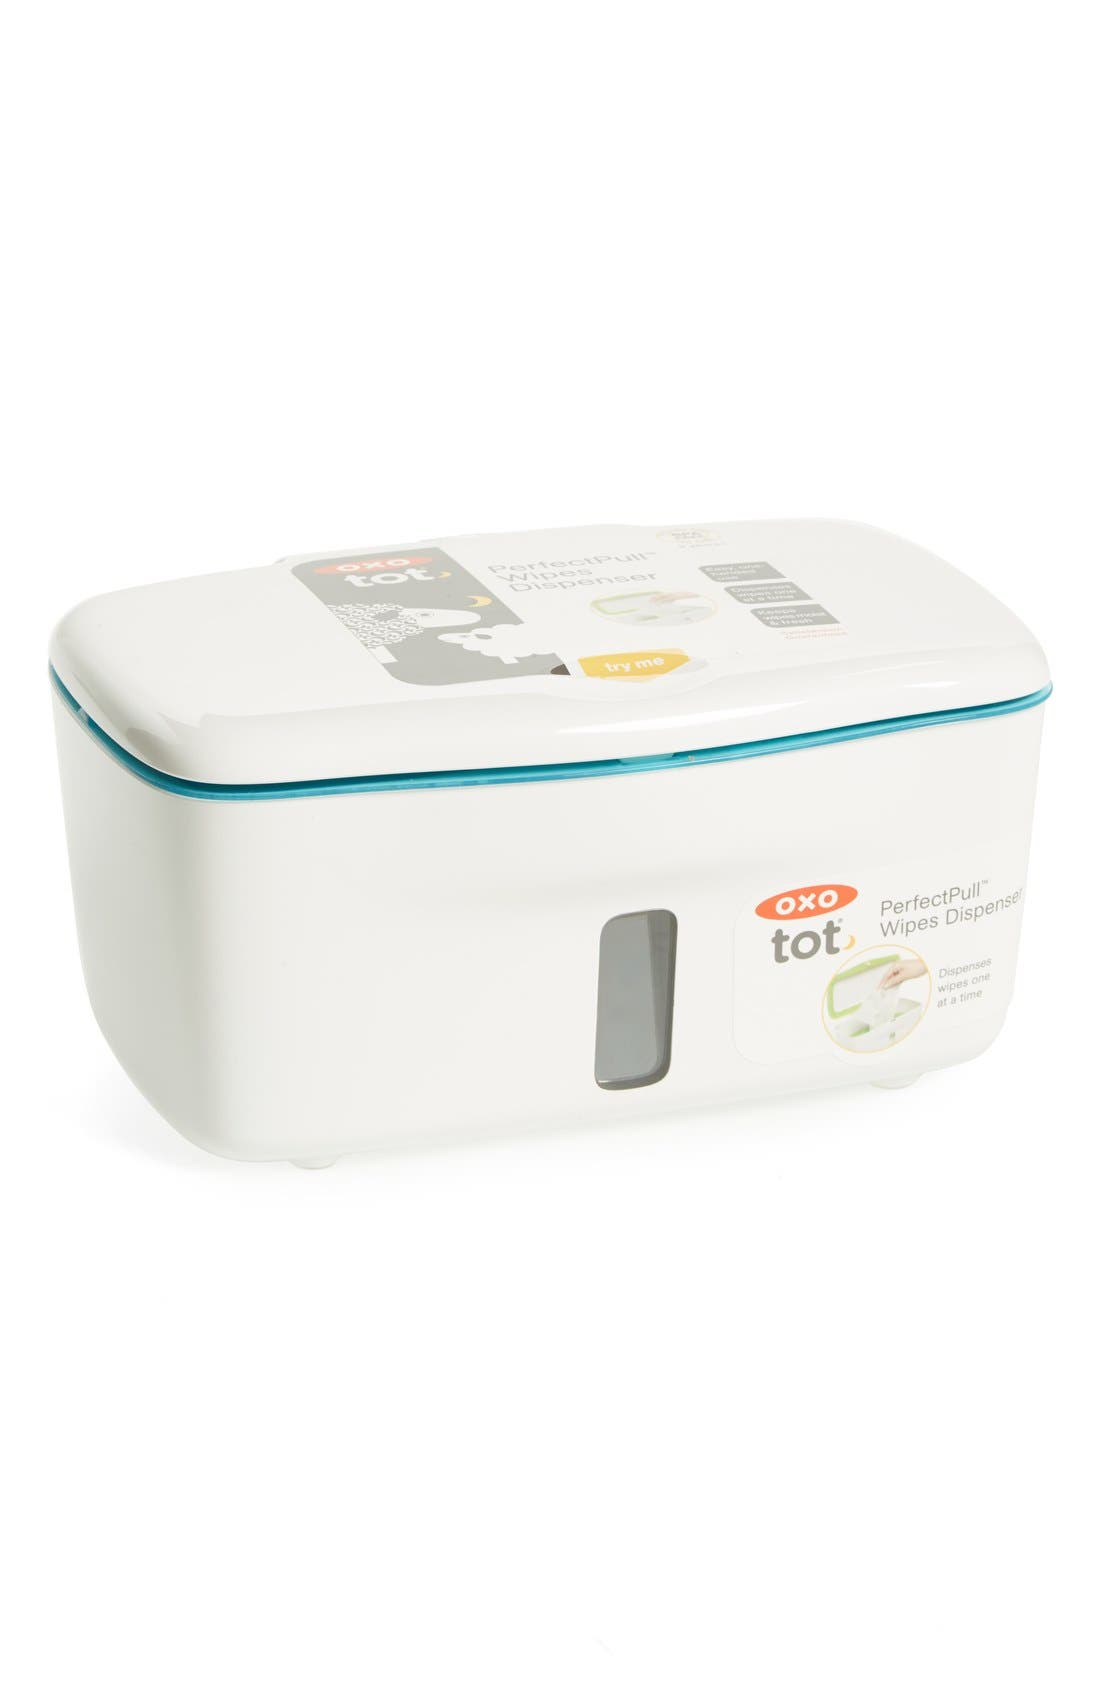 'Perfect Pull<sup>™</sup>' Wipes Dispenser,                             Main thumbnail 1, color,                             Blue